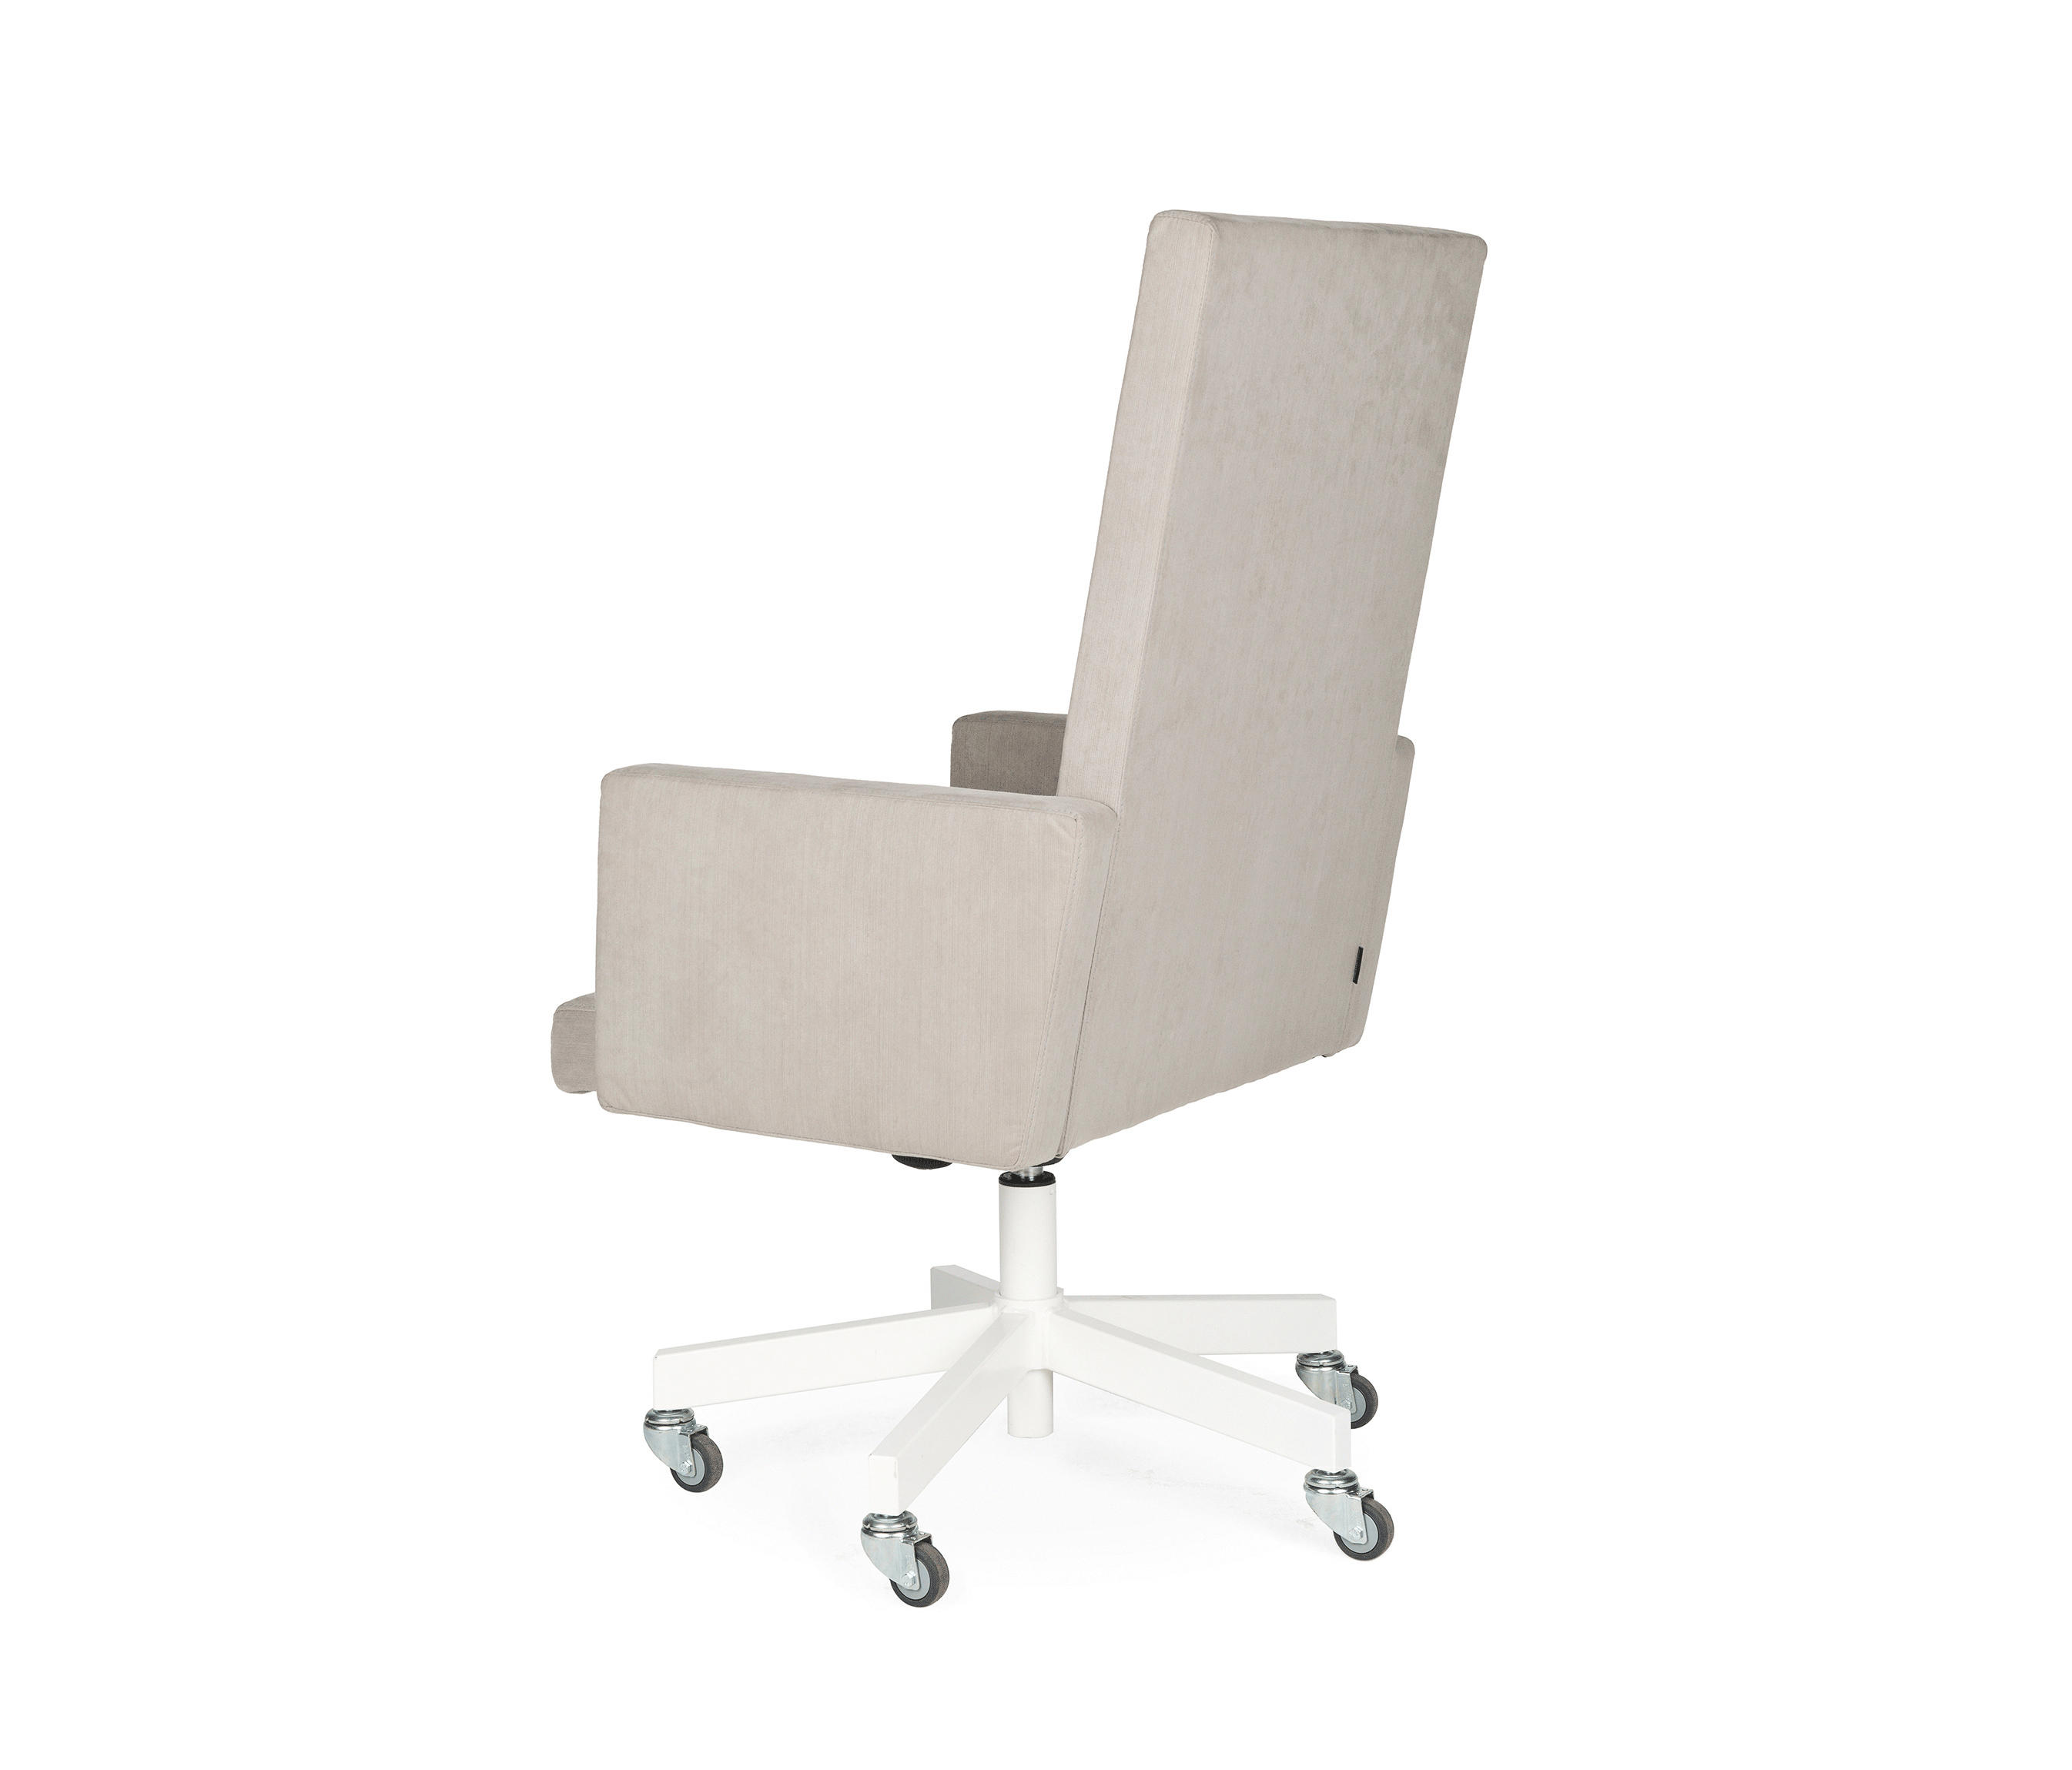 ... AVL Presidential Chair By Lensvelt | Chairs ...